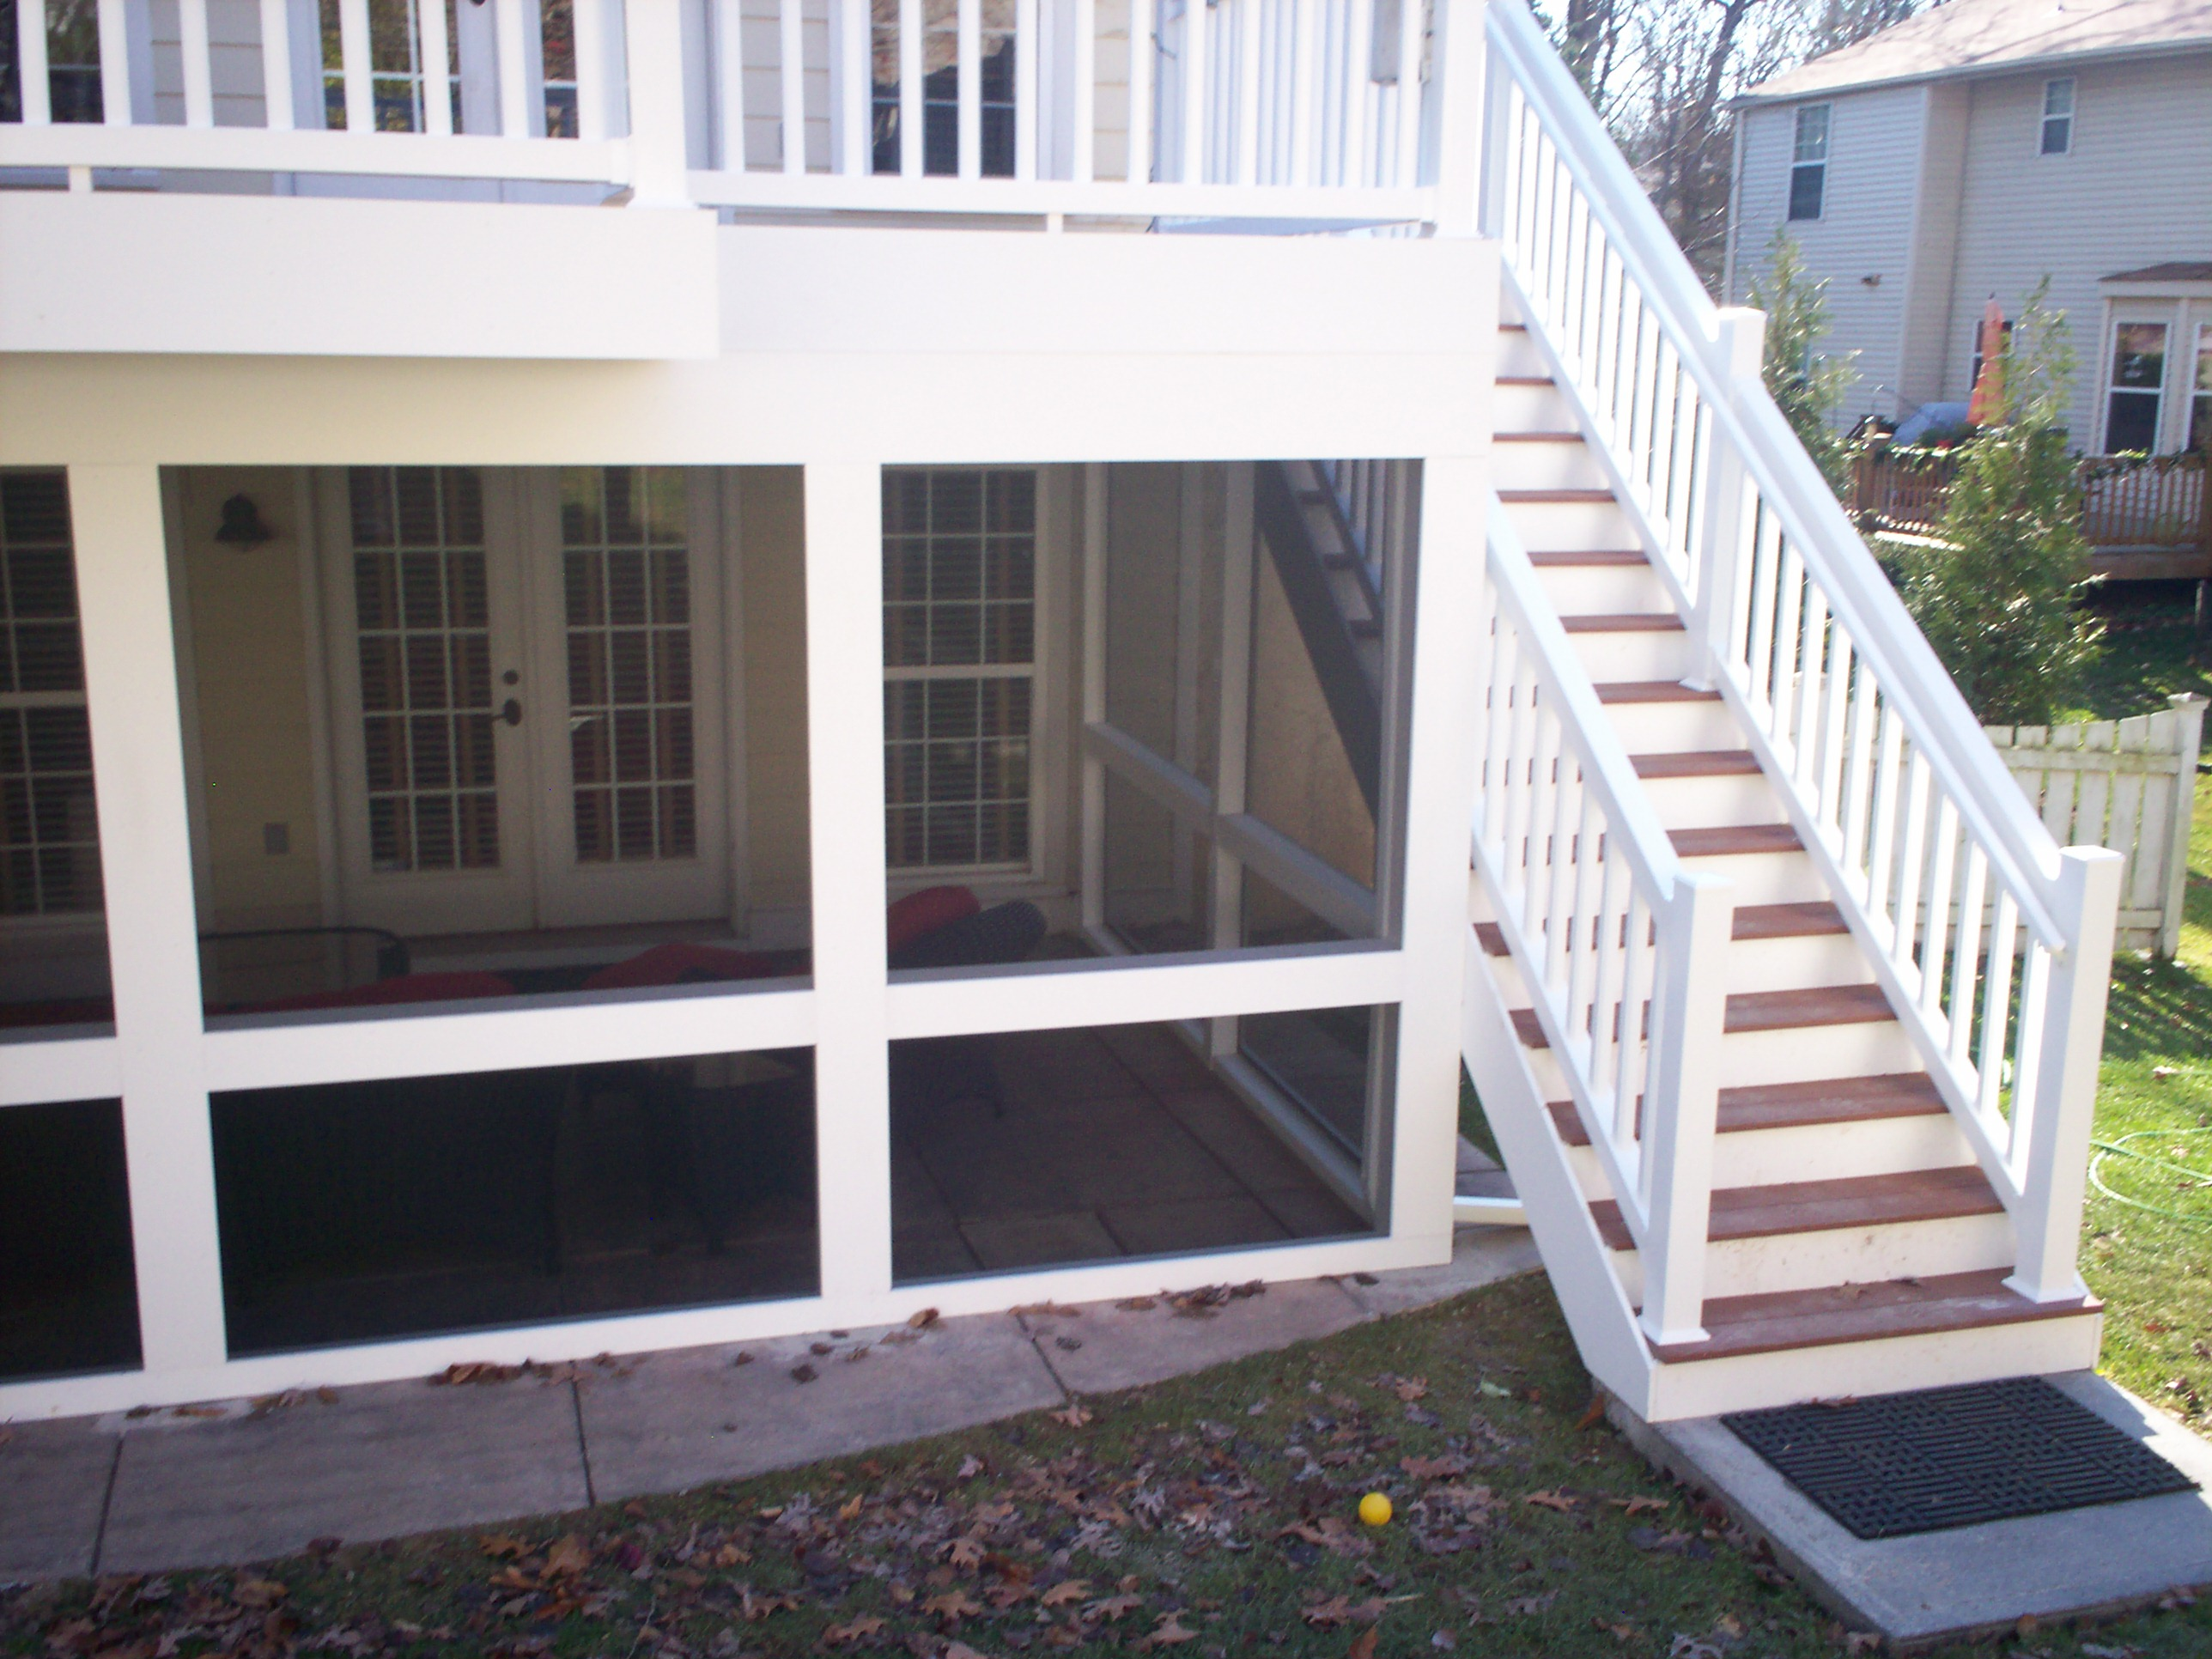 St. Louis Deck and Porch Builder: A Closet of Outdoor ... on Living Room Deck id=68046